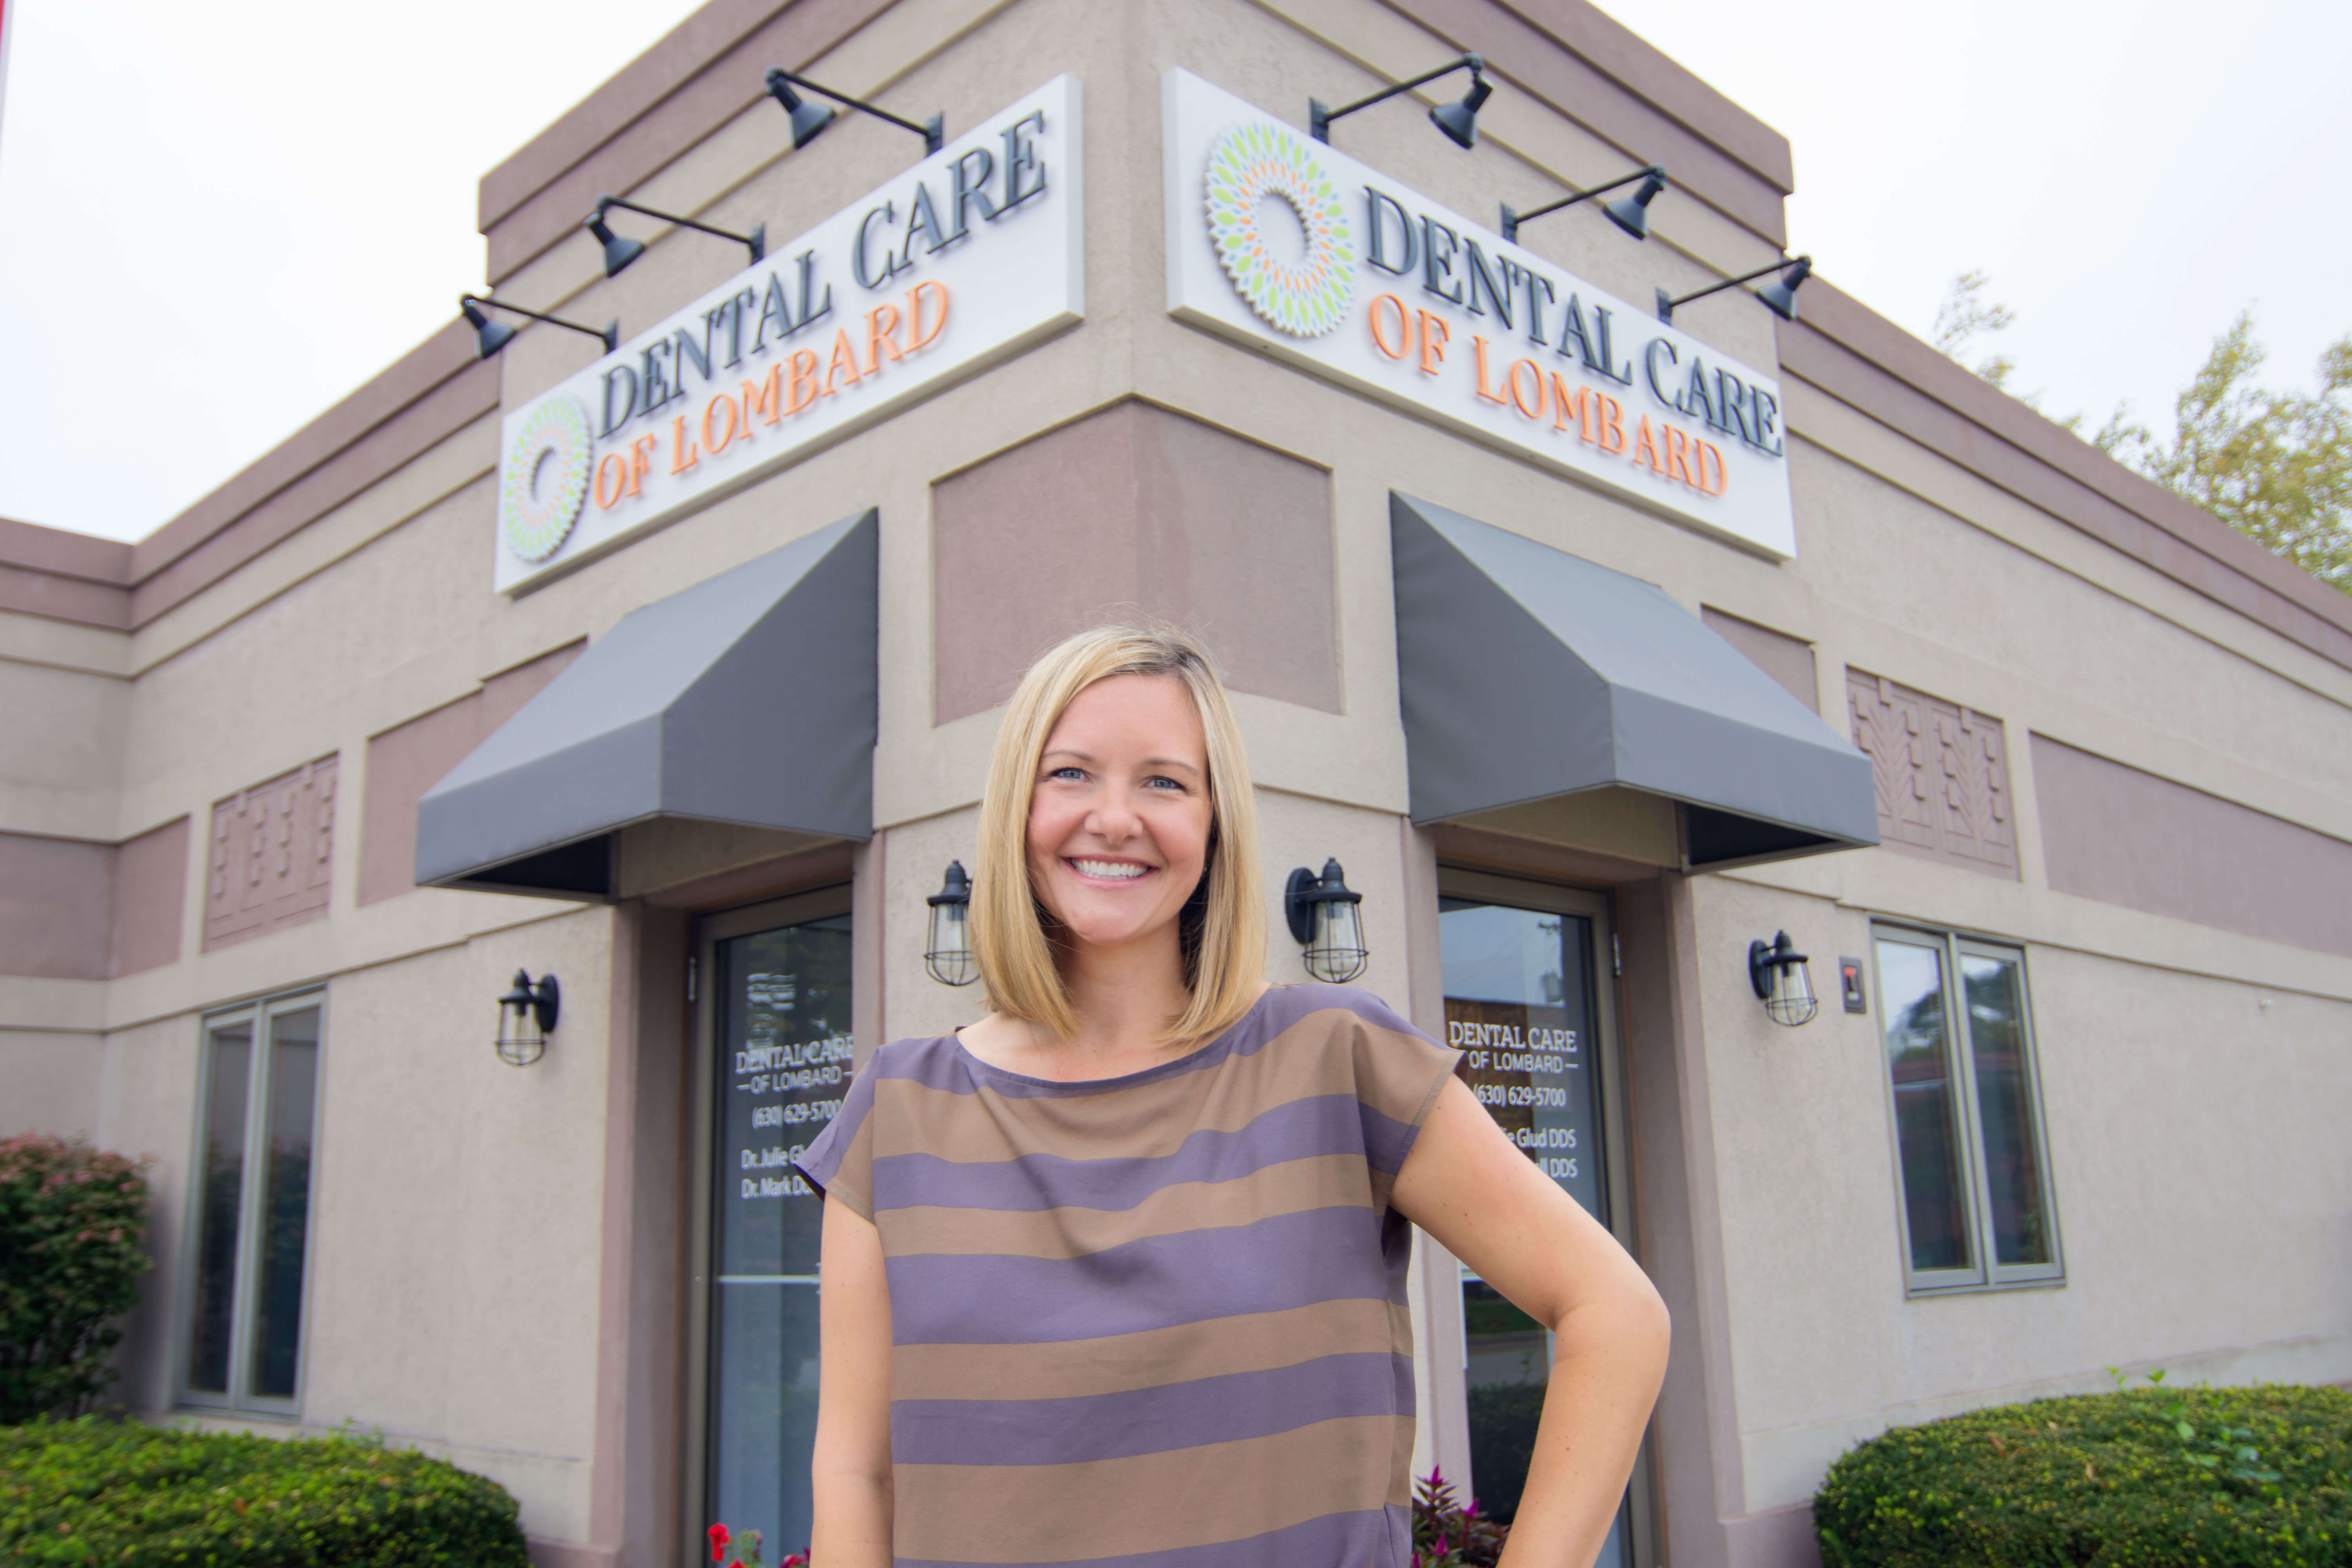 Family Dentist Lombard IL | Dental Care of Lombard | Dentist